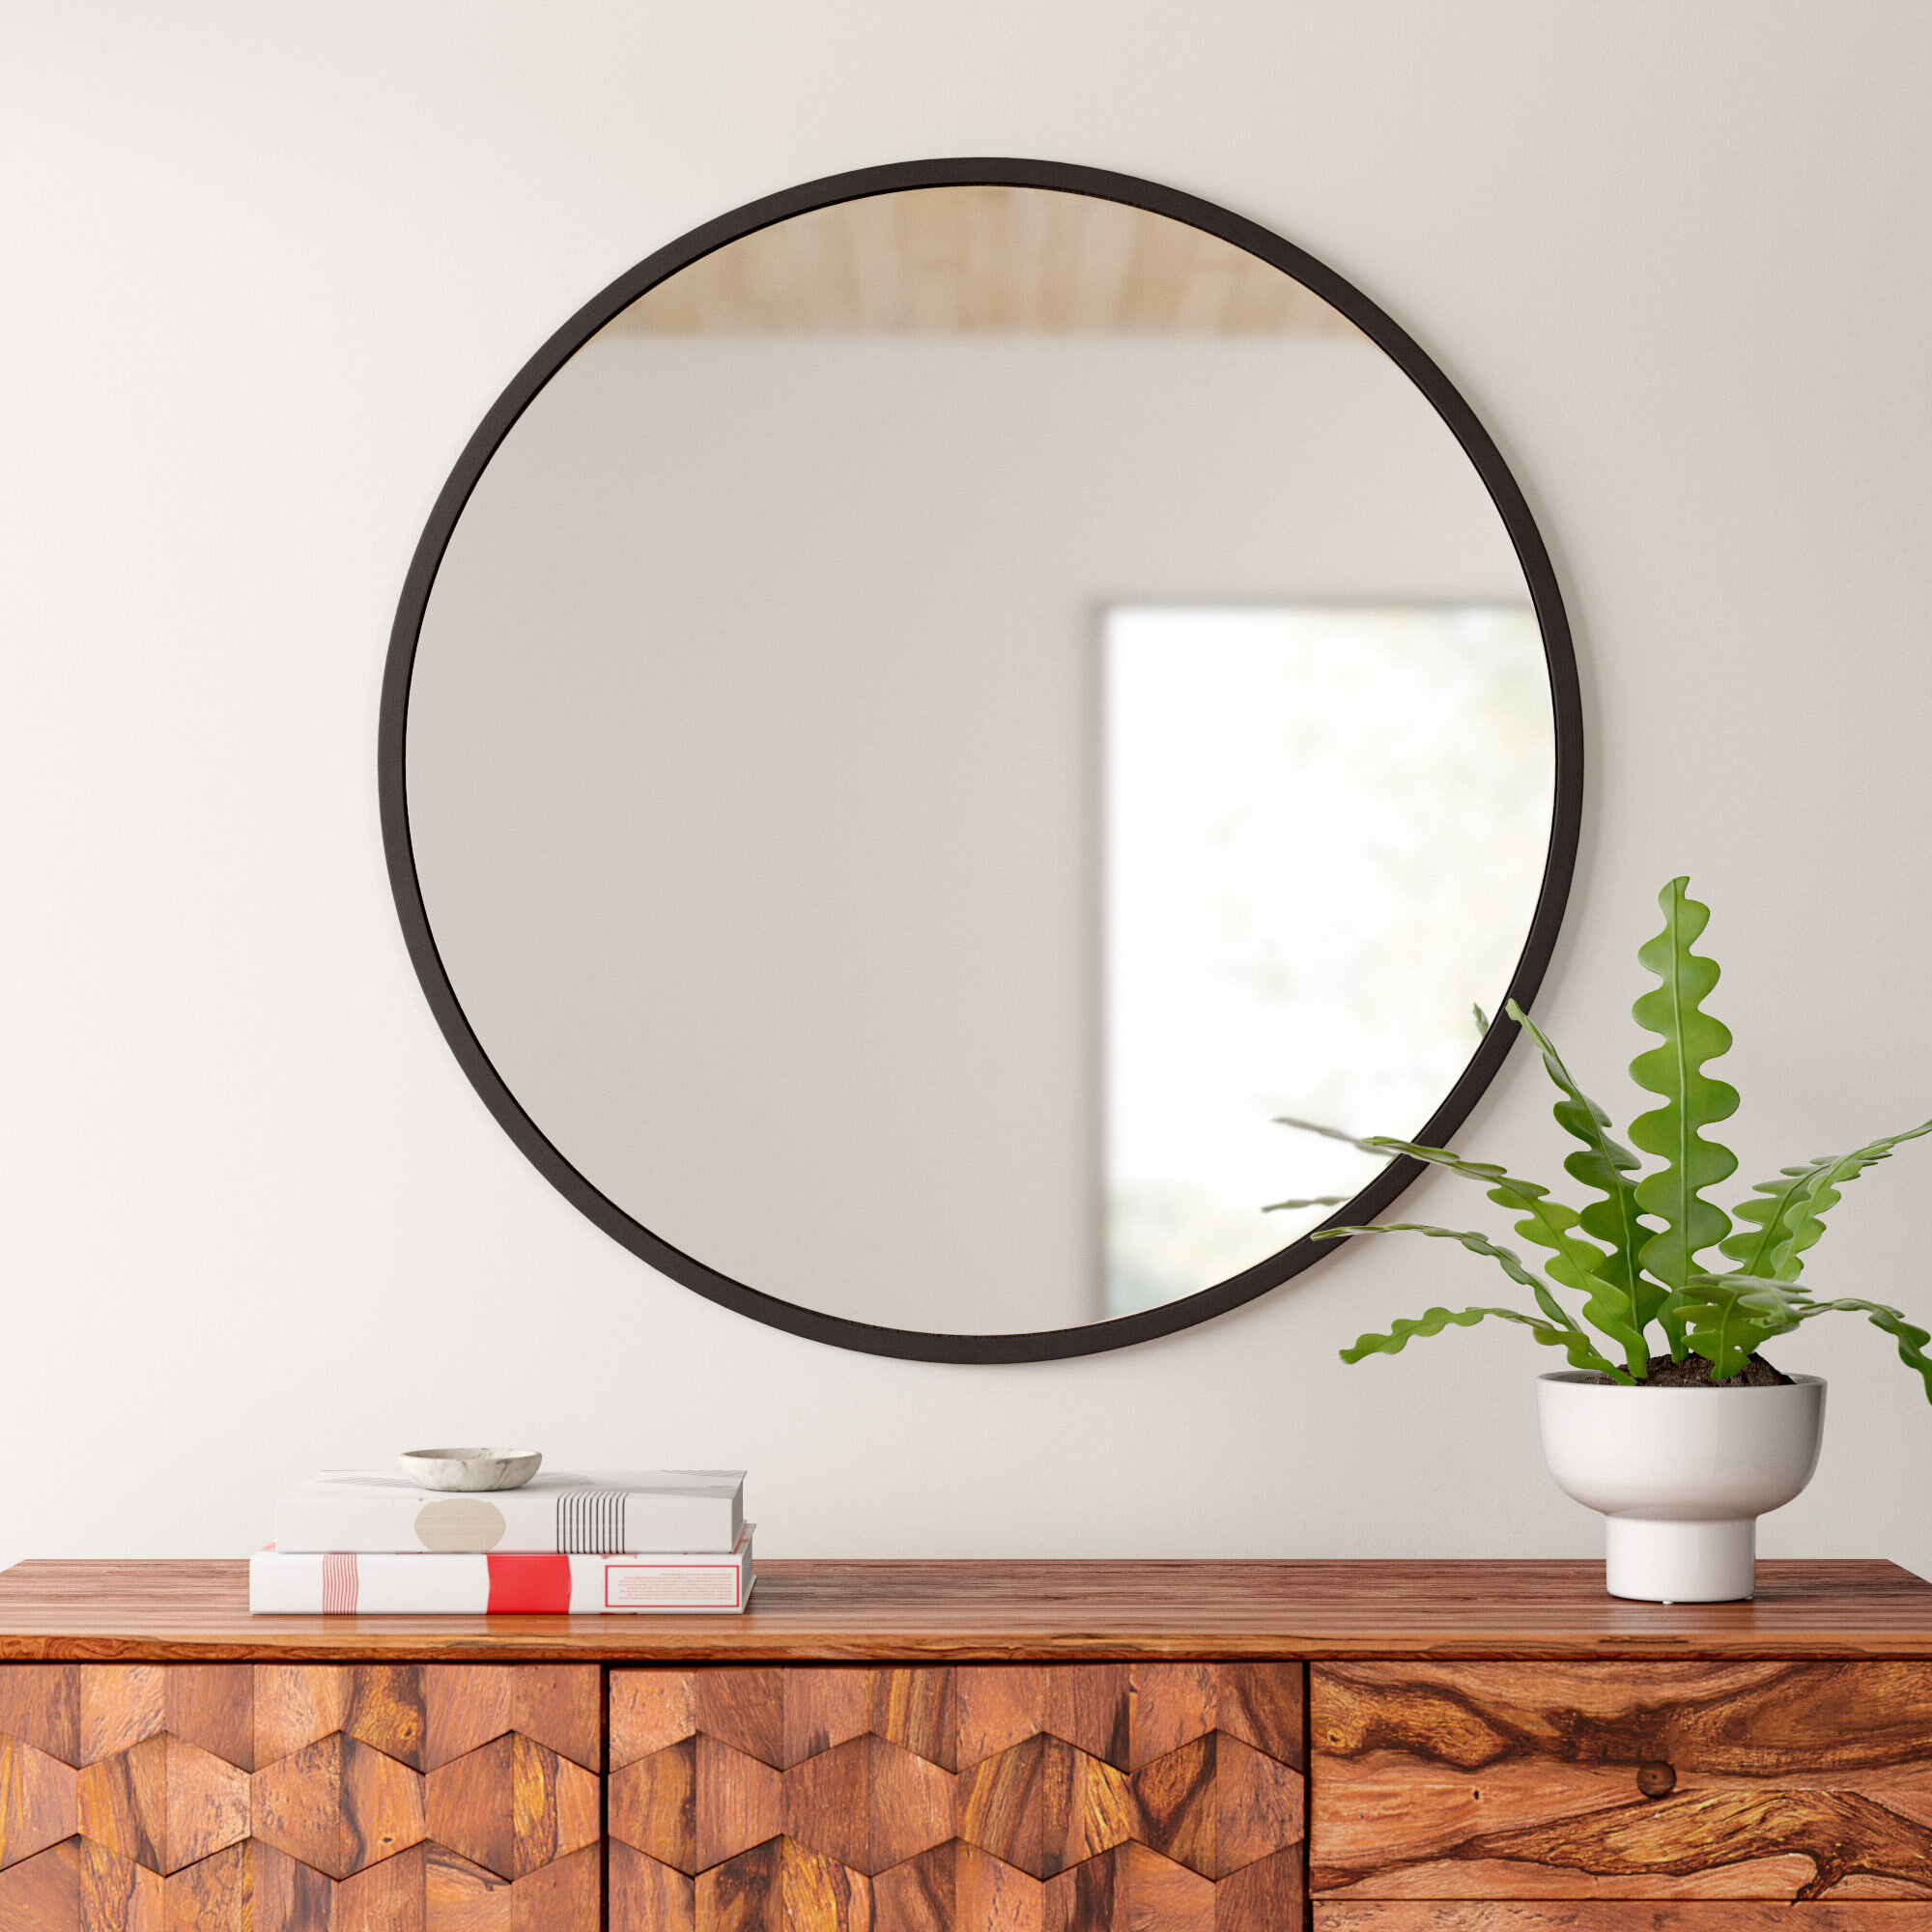 Umbra Hub Modern And Contemporary Accent Mirror intended for Hub Modern And Contemporary Accent Mirrors (Image 26 of 30)